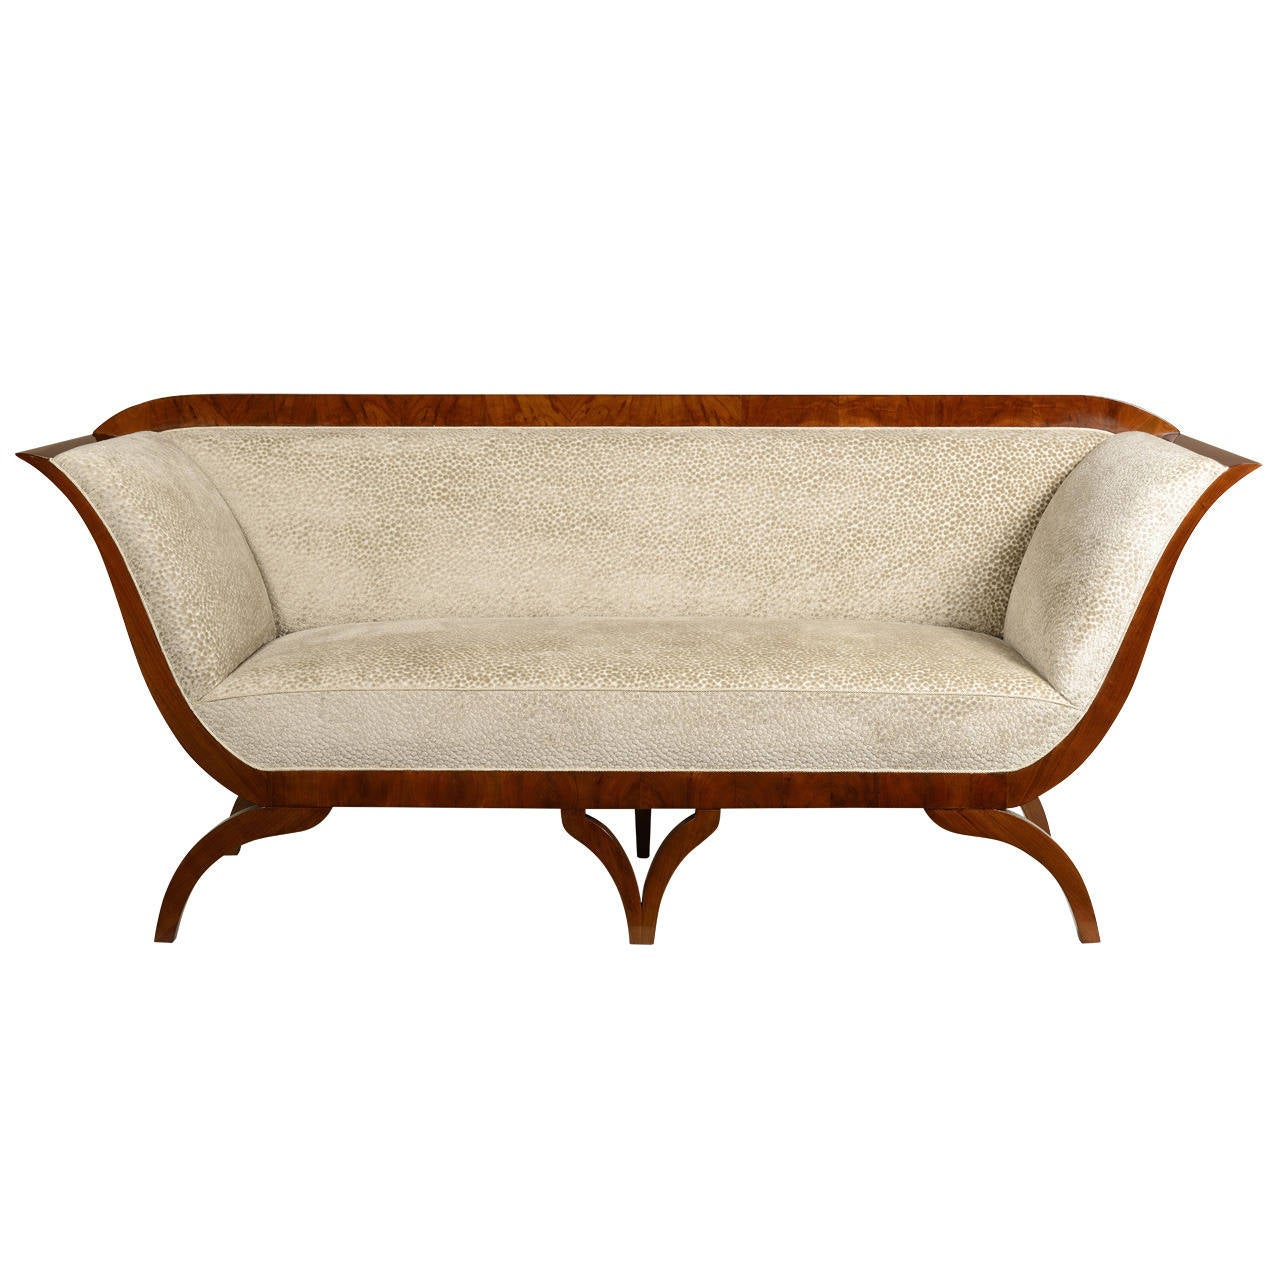 Biedermeier sofa attributed to josef danhauser for sale at 1stdibs Biedermeier sofa